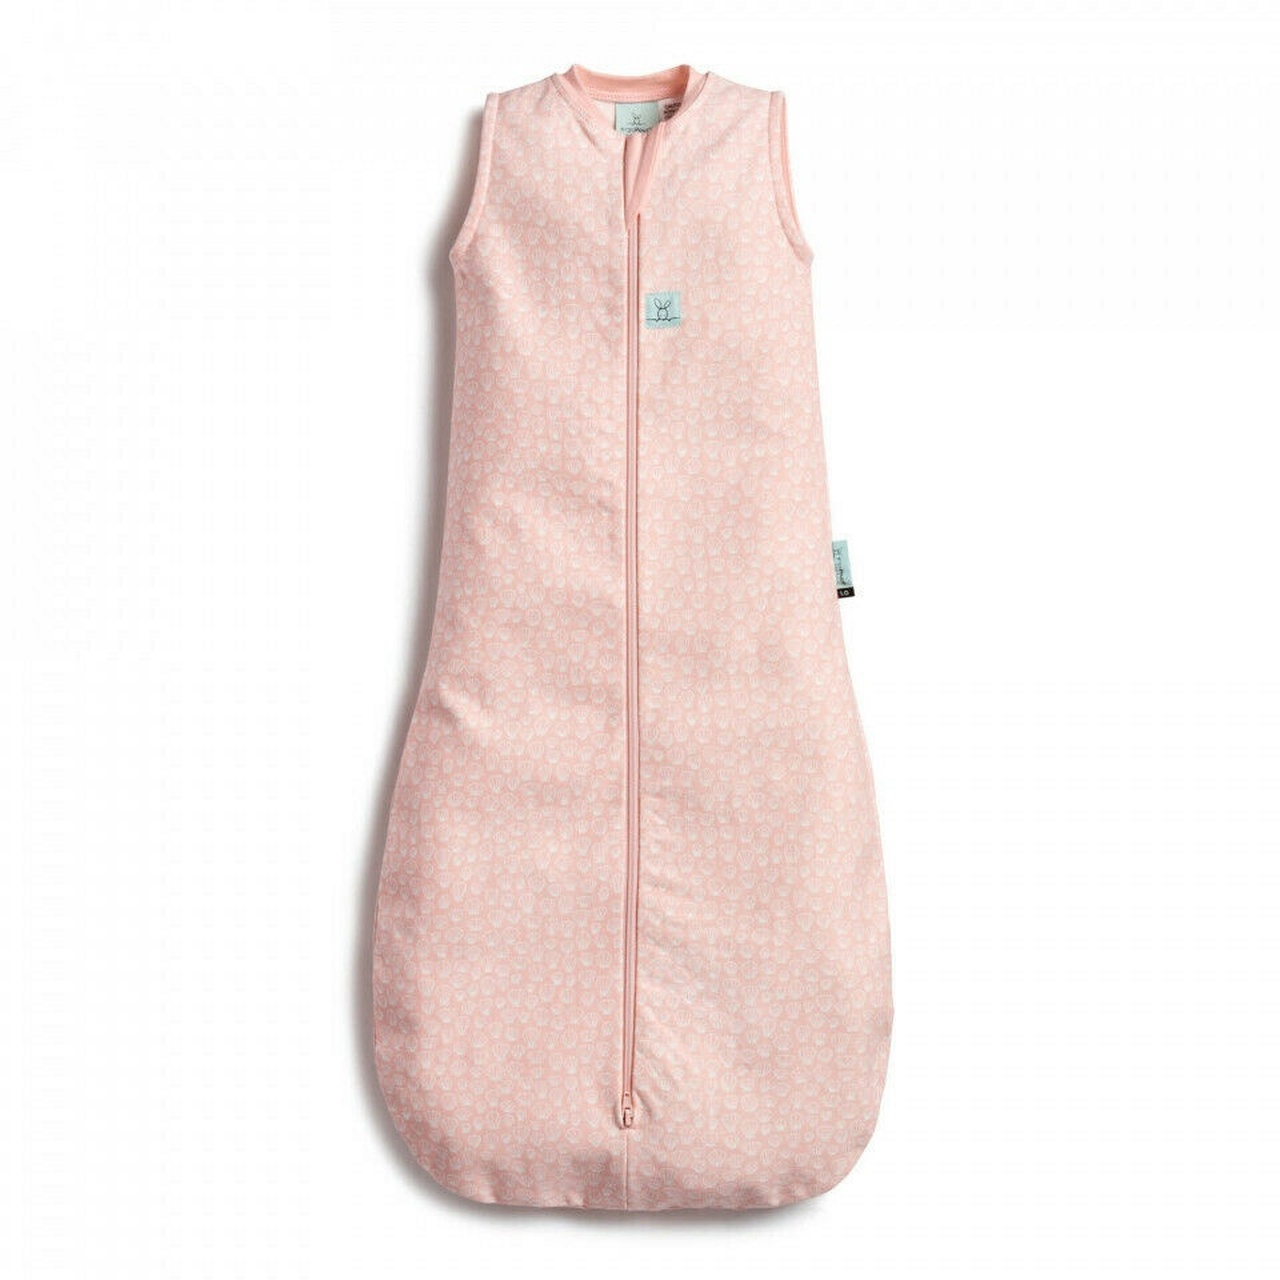 ergoPouch Jersey Sleeping Bag 1.0Tog 3-12 Months SHELLS at Baby Barn Discounts Ergopouch Jersey Sleeping Bag is the ideal first sleeping bag for baby.